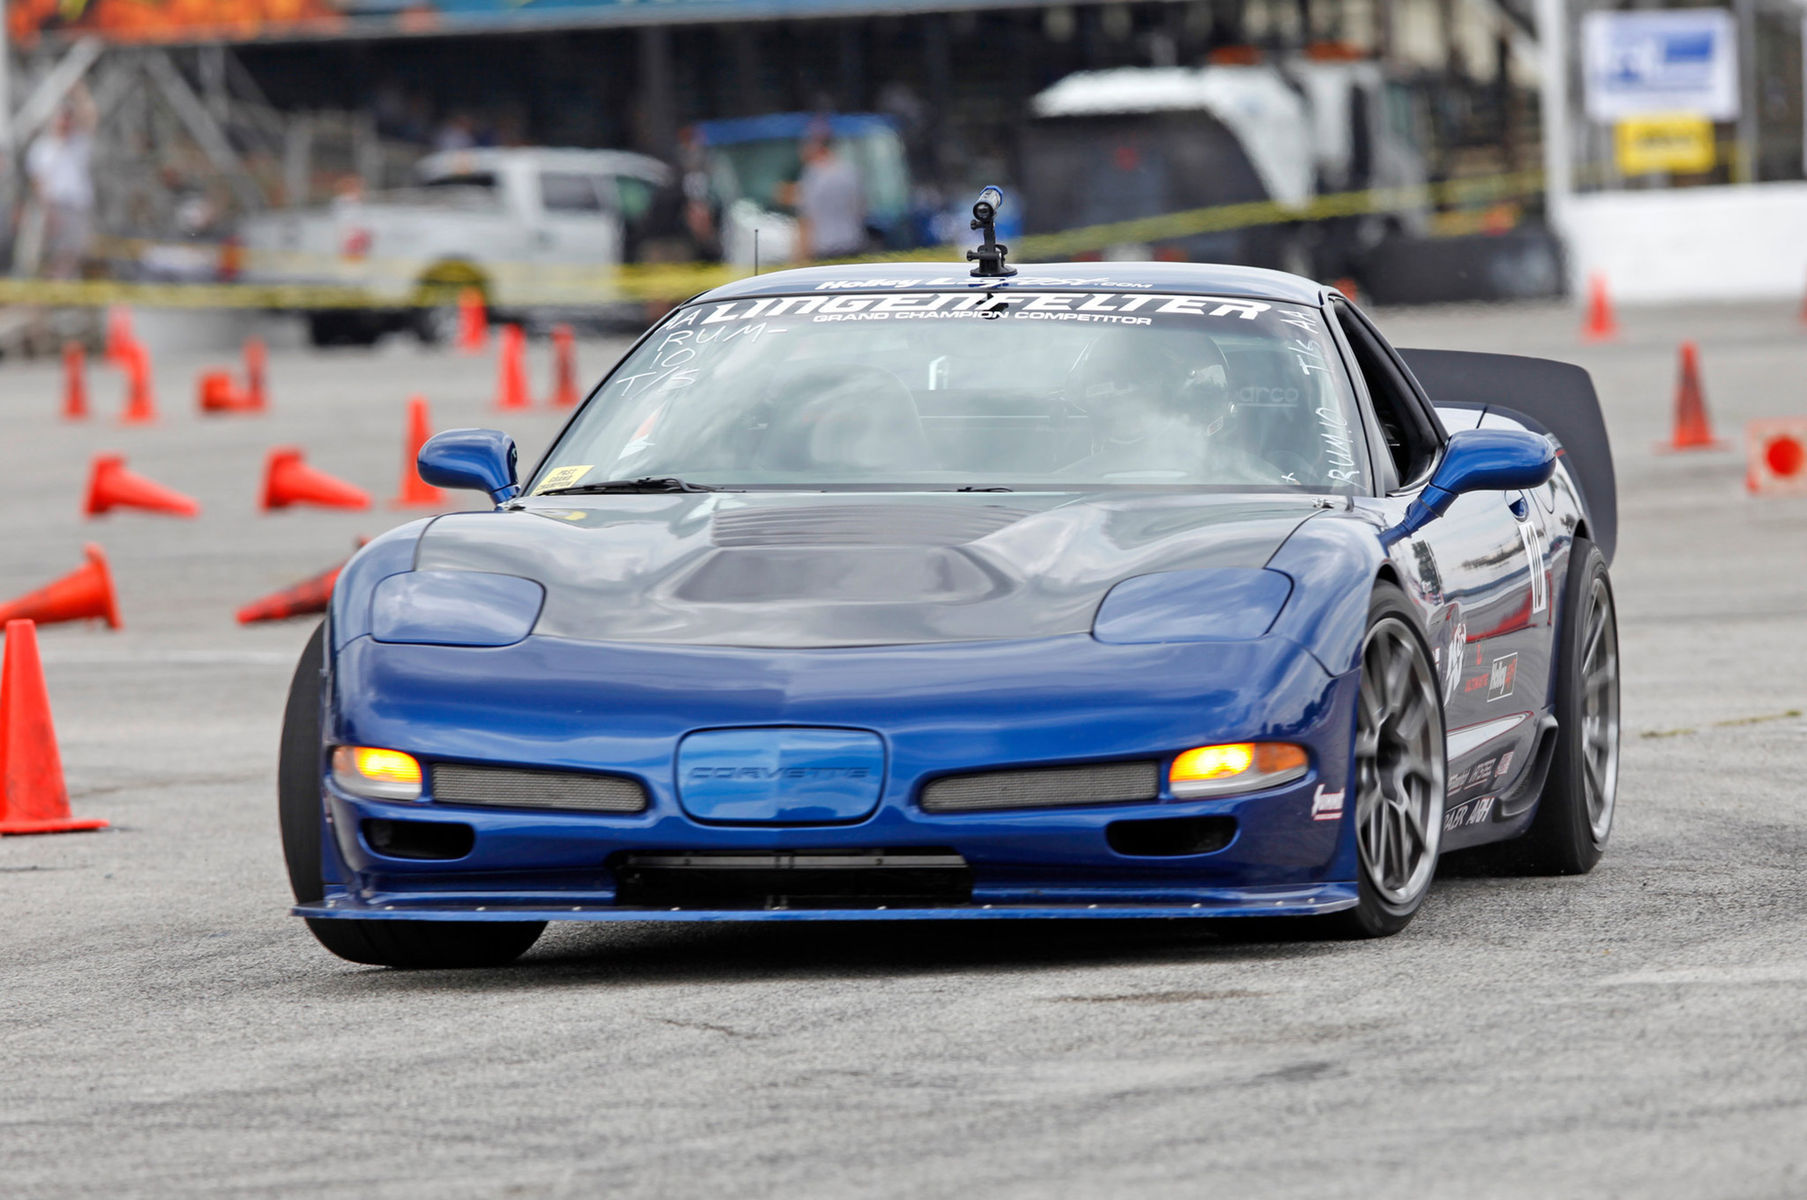 2003 Chevrolet Corvette Z06 | Danny Popp's Z06 Corvette on Forgeline GS1R Wheels